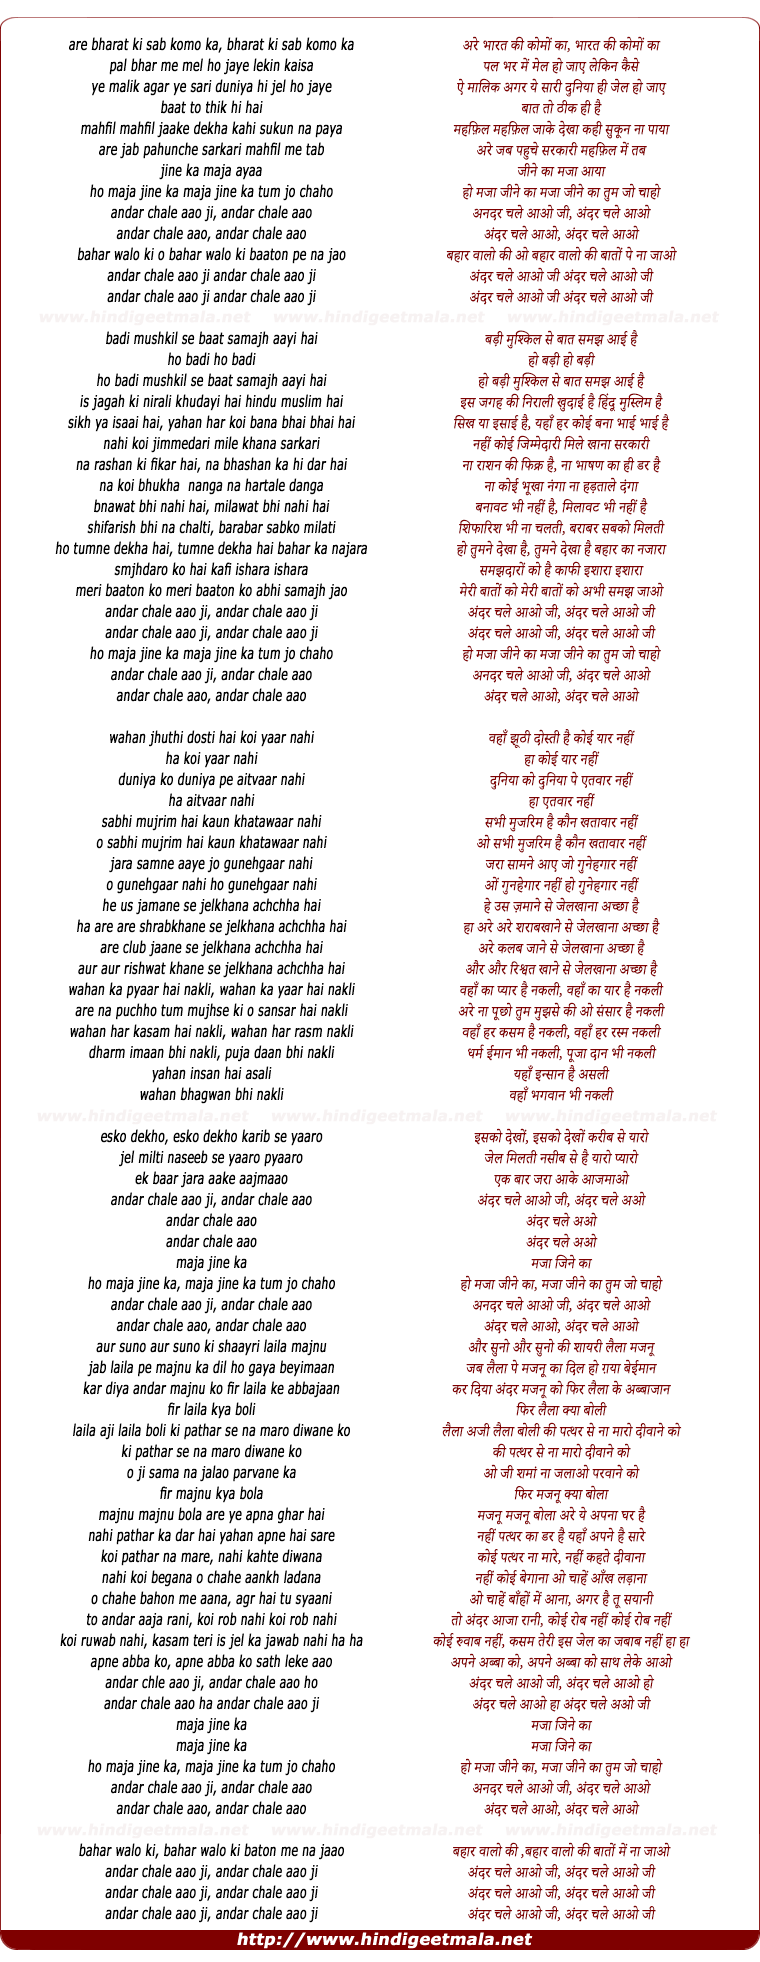 lyrics of song Andar Chale Aao Ji Andar